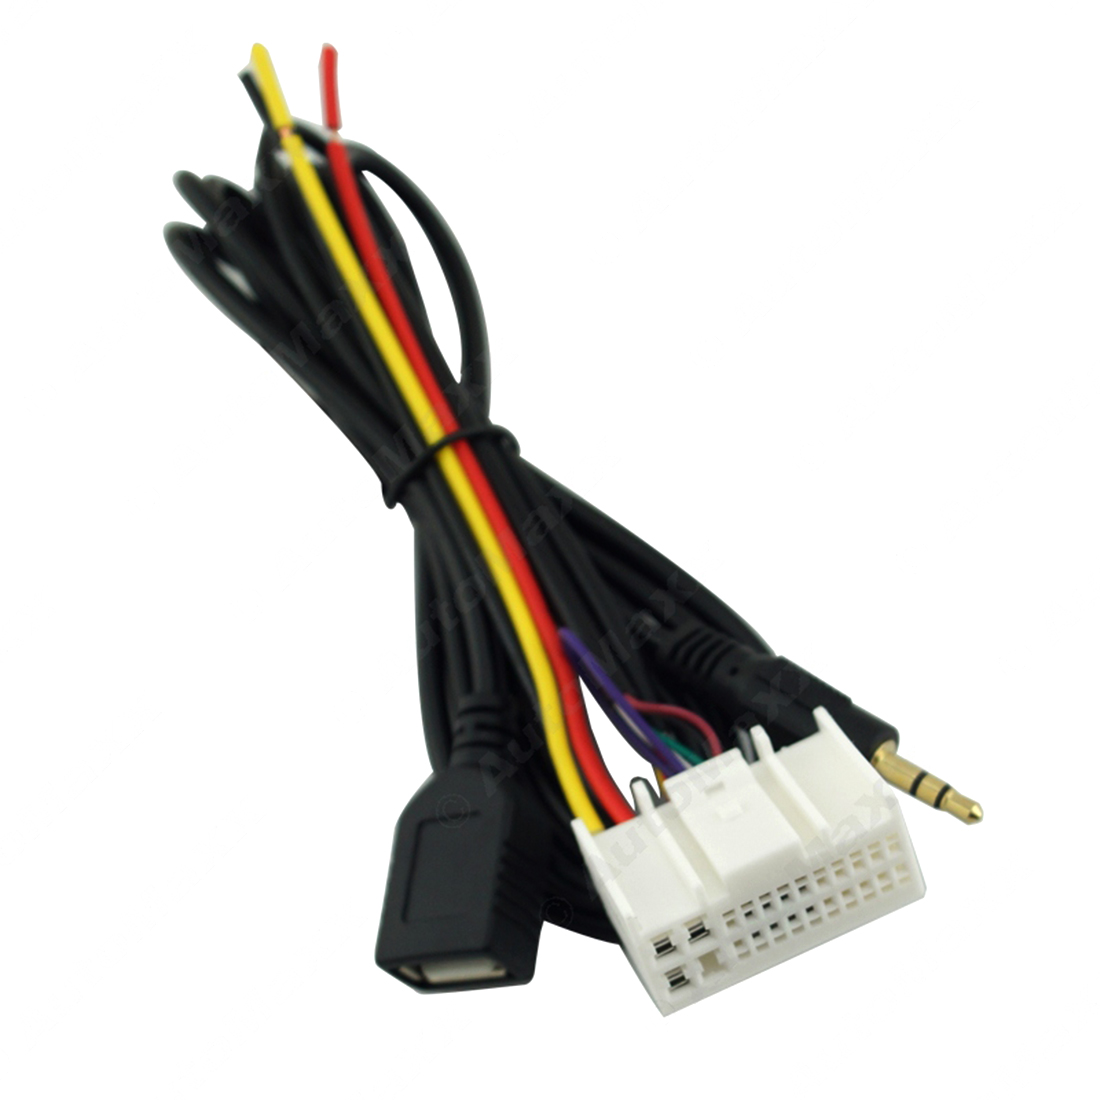 310B3DA Jvc Kd R300 Wiring Harness Adapter | Wiring Resources on jvc speaker, jvc harness diagram, sony stereo wire harness diagram, jvc dvd car stereo wiring, jvc kd r200 wire diagram, jvc wiring harness, jvc kd s29 wiring, jvc user manual, standard car stereo wire diagram, jvc kd r330 wiring,